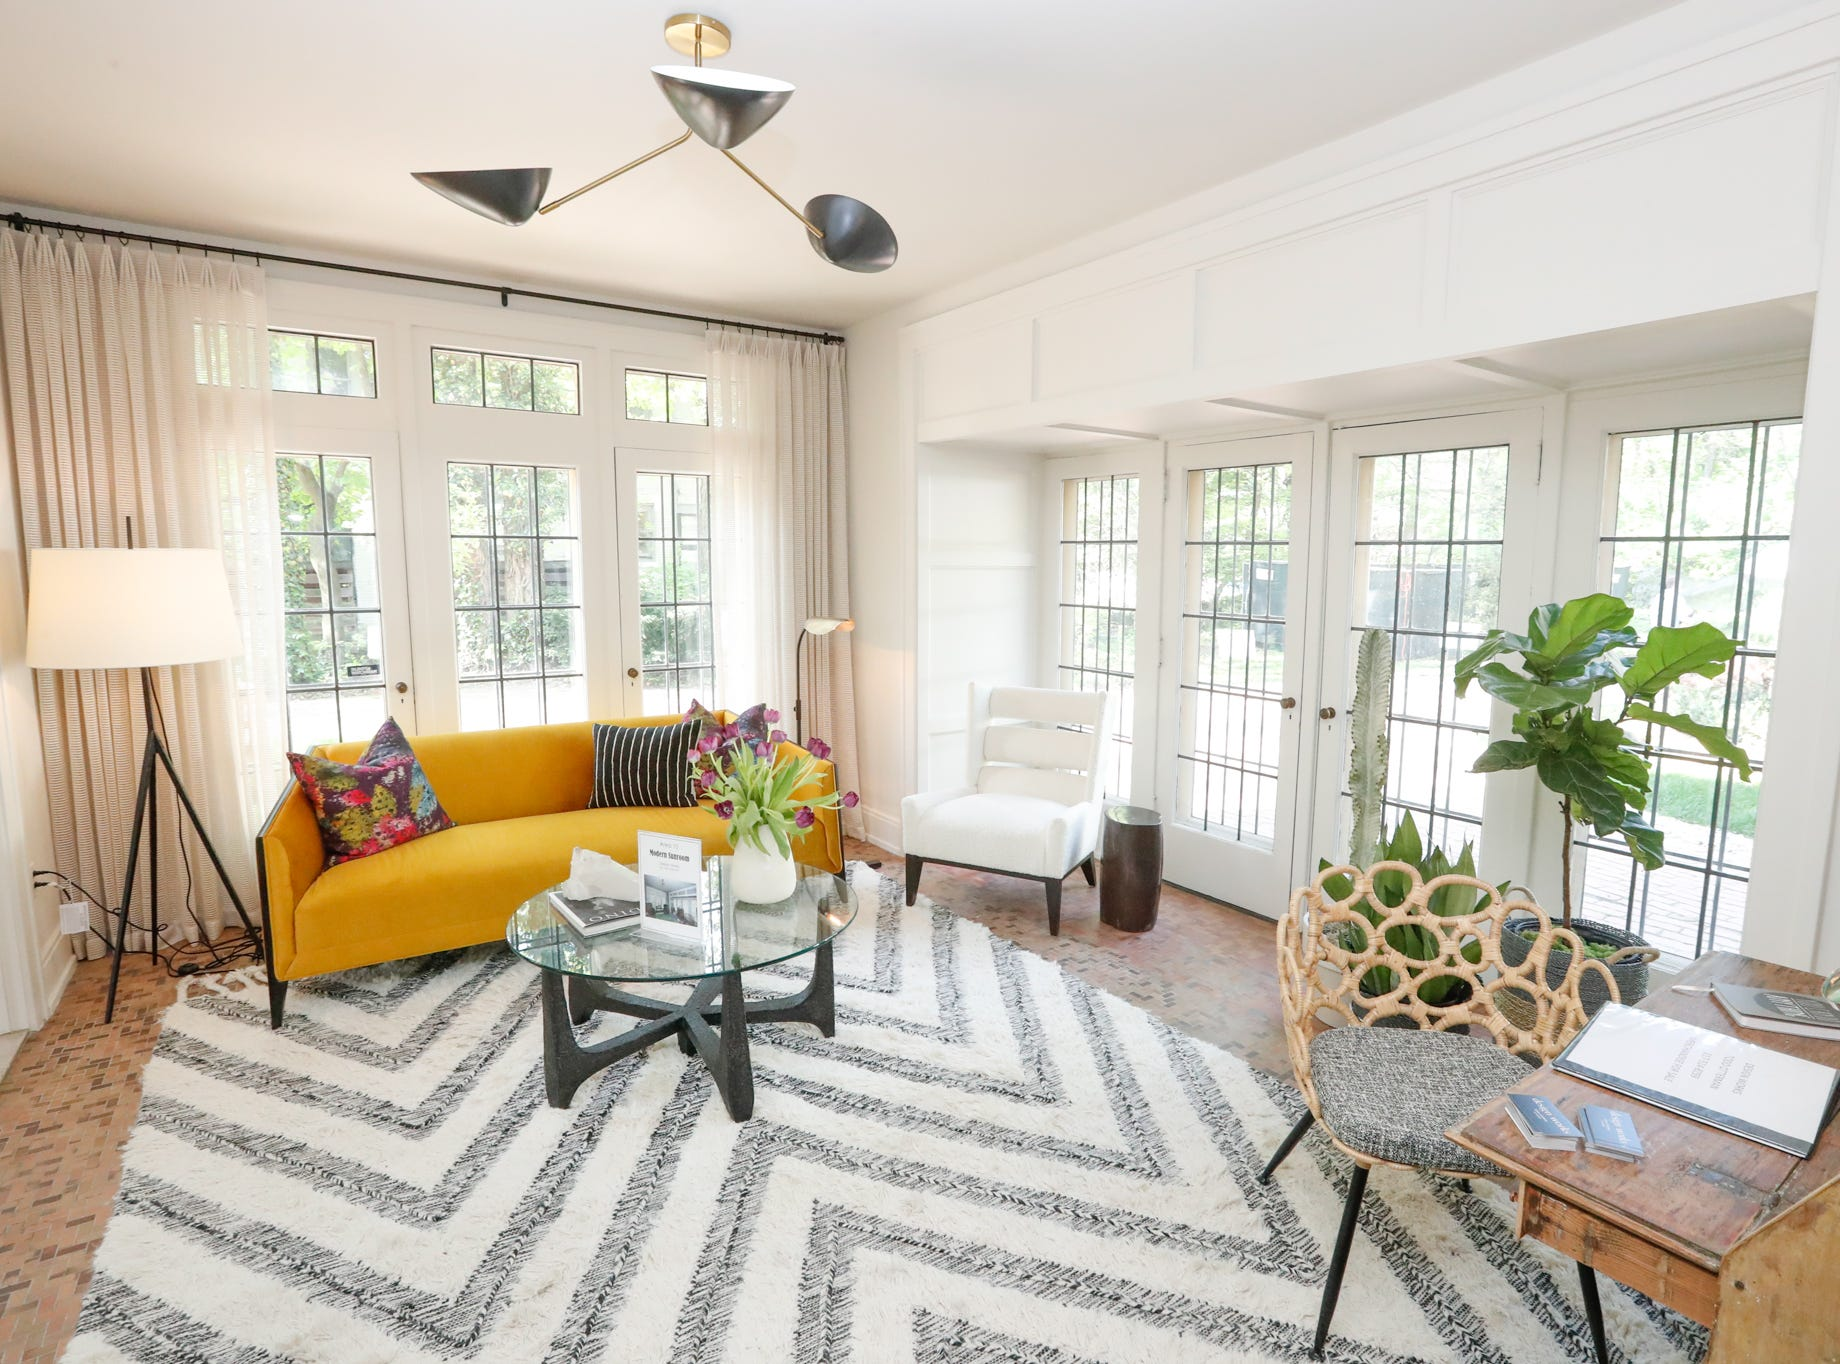 """The """"Modern Sunroom"""", designed by Todd Otterman, of Design Works, inside the The 58th annual St. Margaret's Hospital Guild Decorators' Show House and Gardens, located at 4160 Washington Blvd., Indianapolis, on Wednesday, May 8, 2019."""